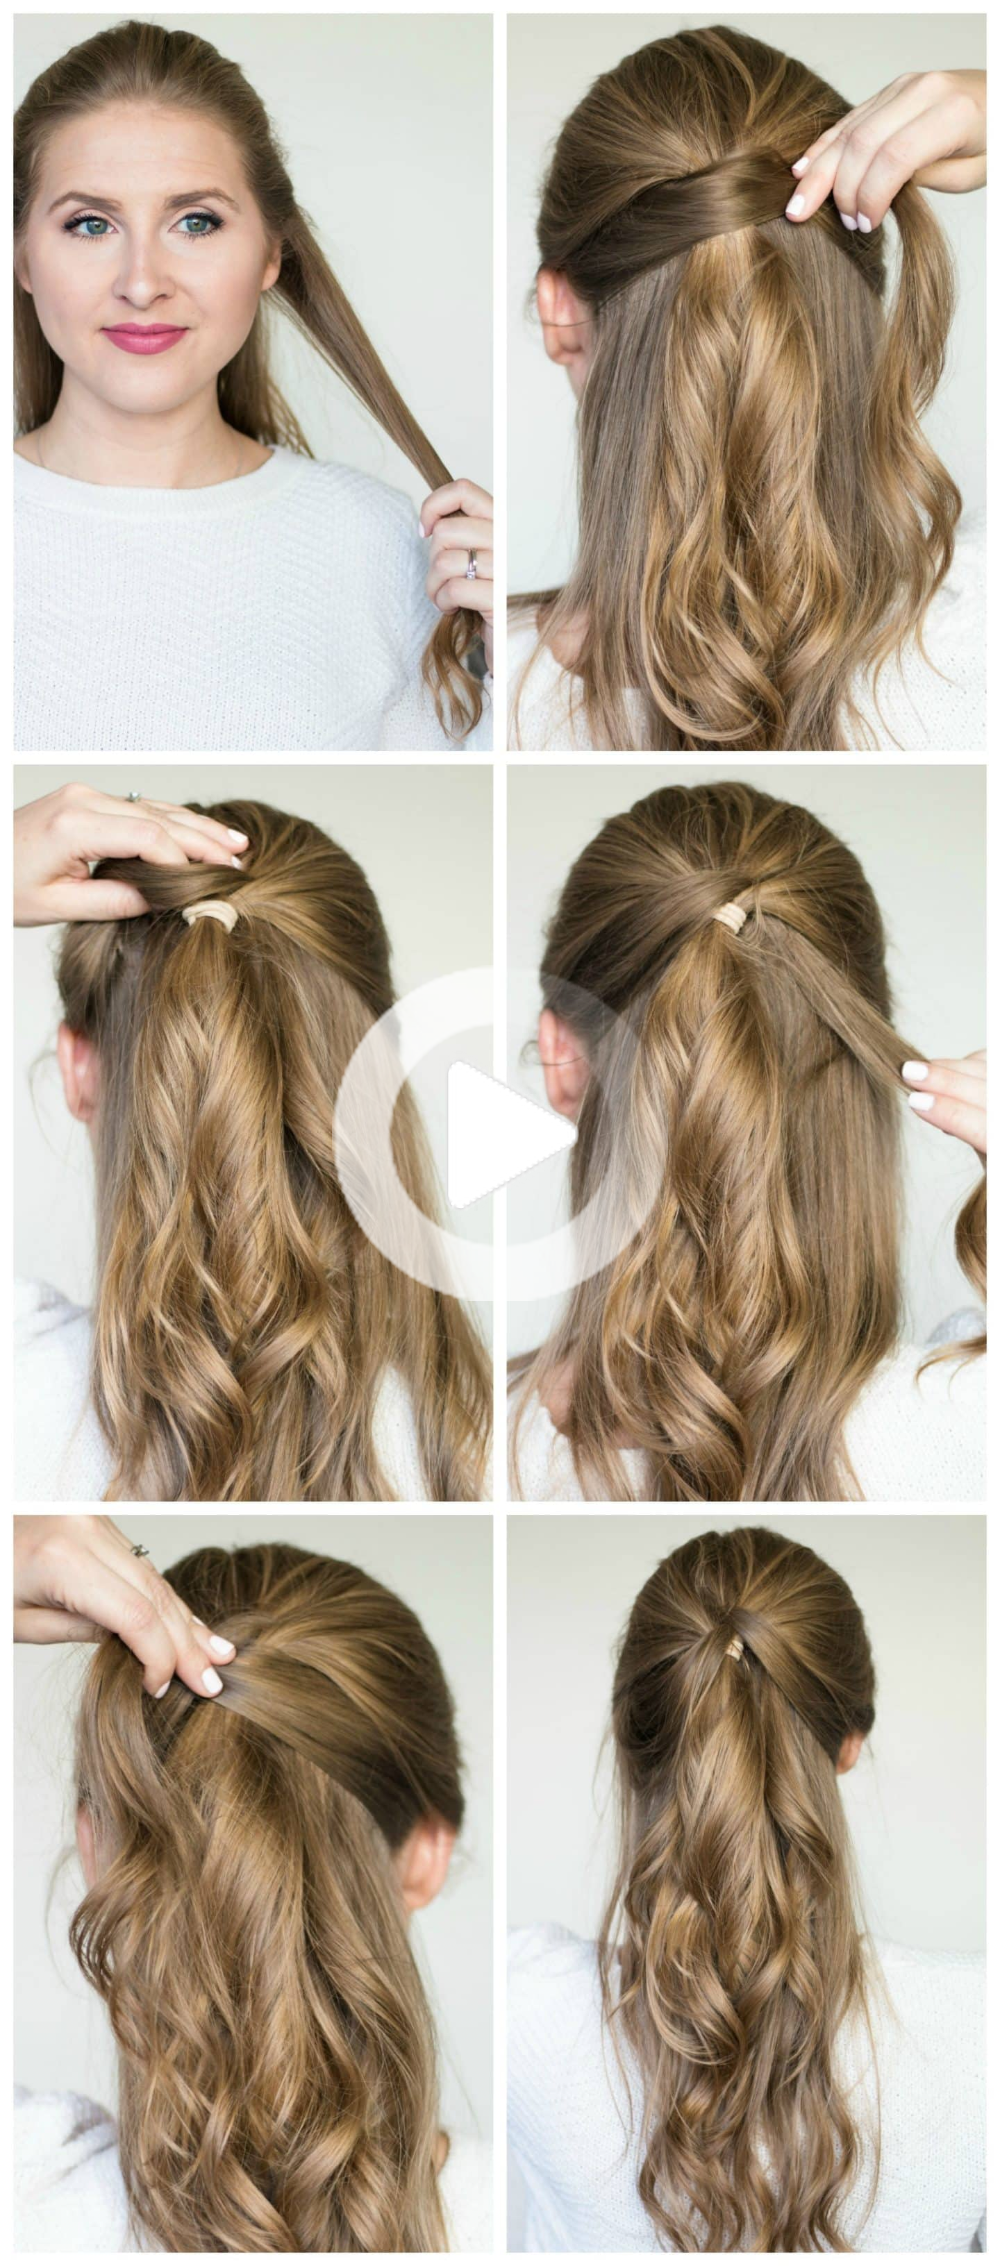 Pin On Hair Everywhere Easy Party Hairstyles Party Hairstyles For Long Hair Easy Hairstyles For Long Hair